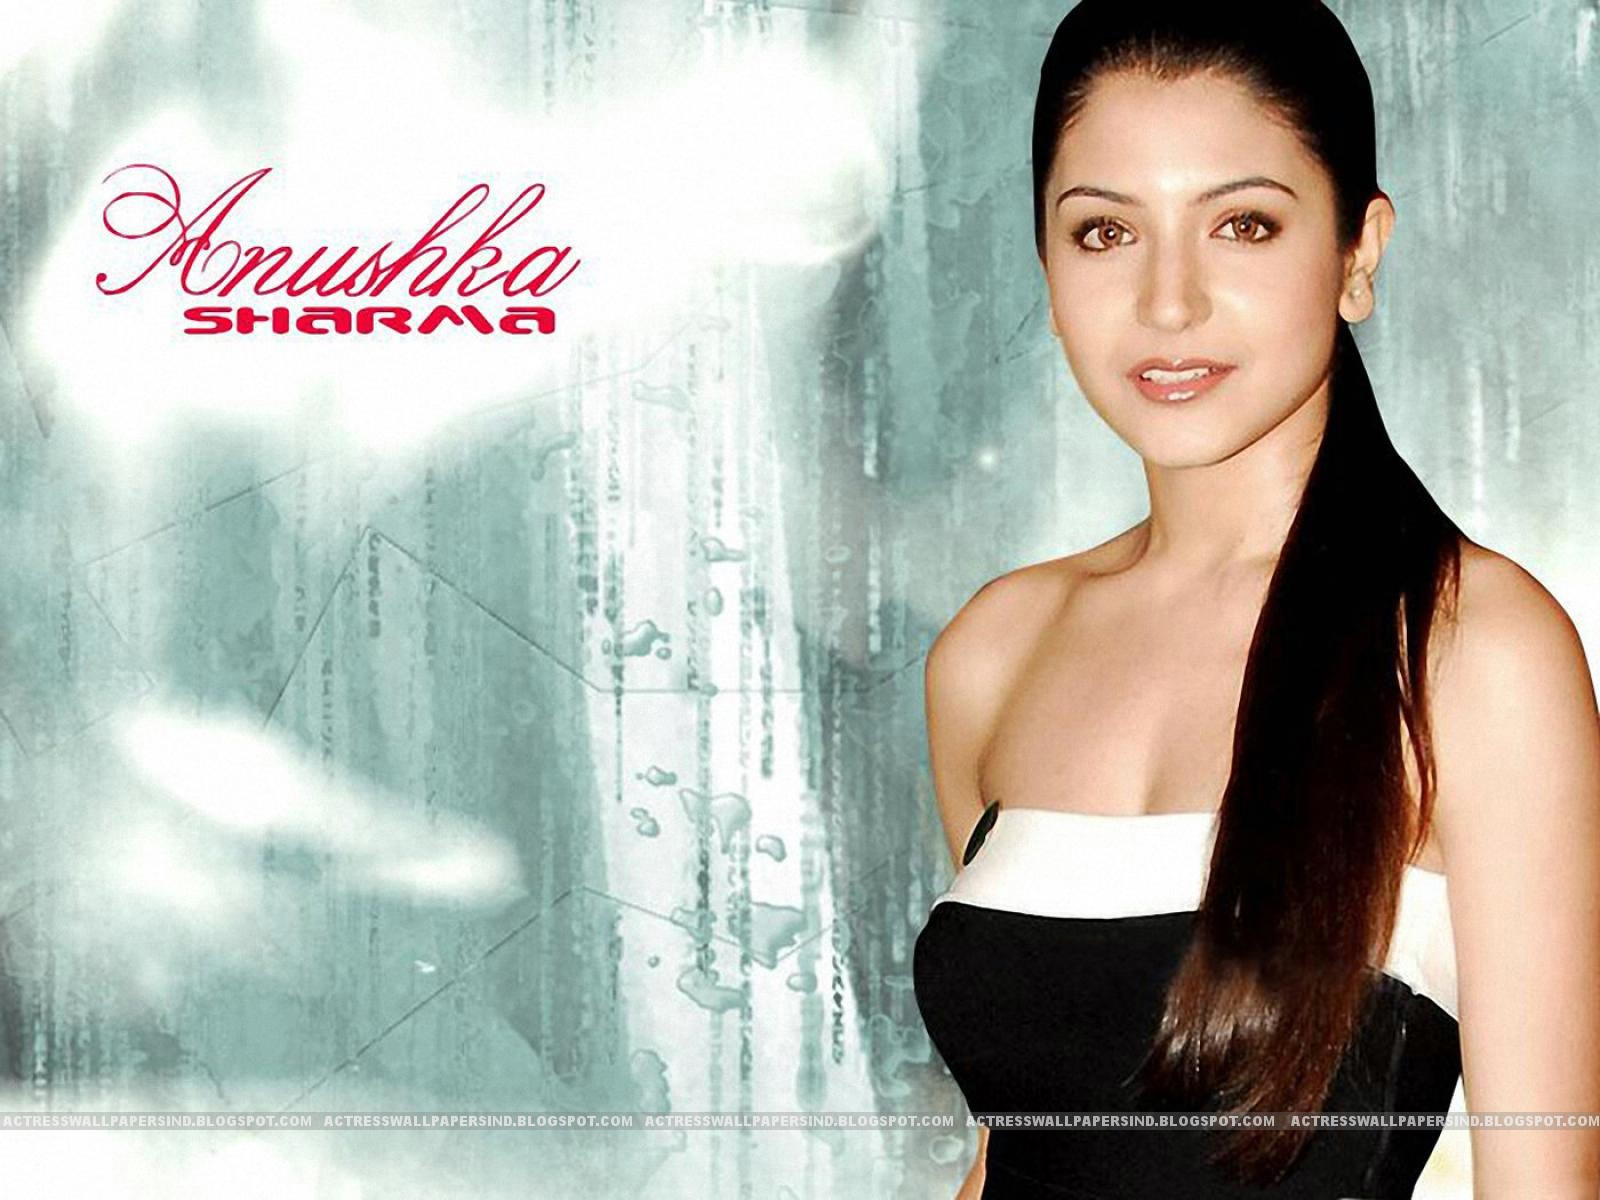 Anushka Sharma Sexy Photos Hd - A Wind-8310